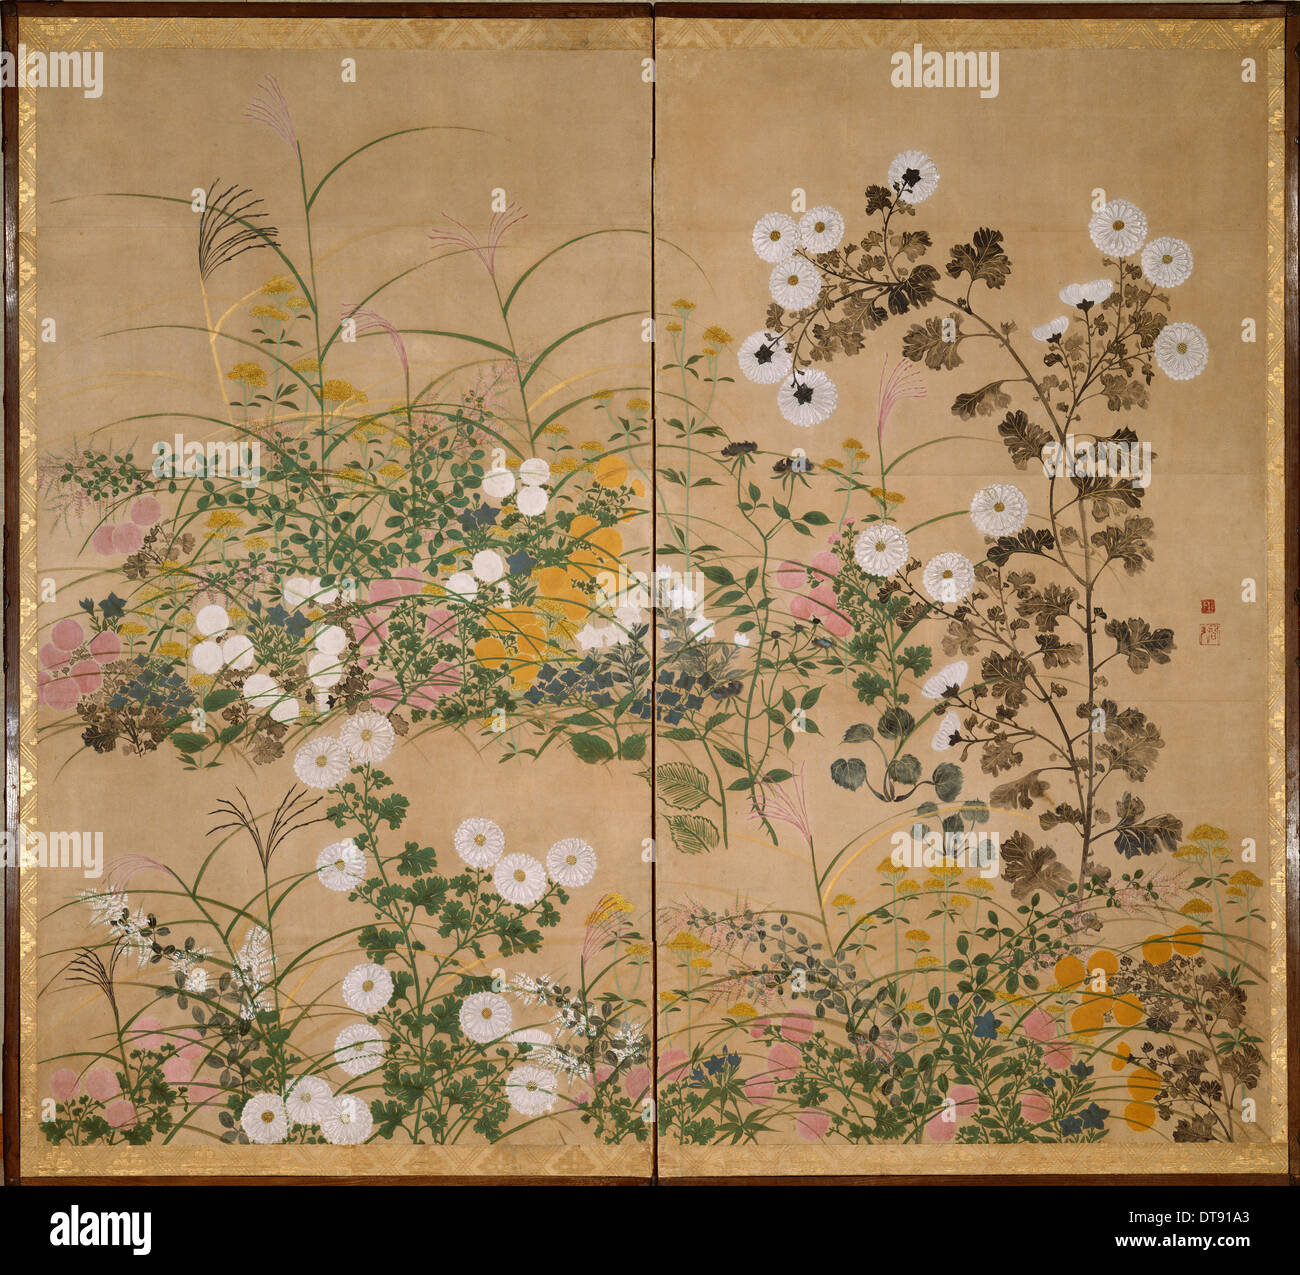 Flowering Plants in Autumn, 18th century. Artist: Korin, Ogata (1658-1716) - Stock Image